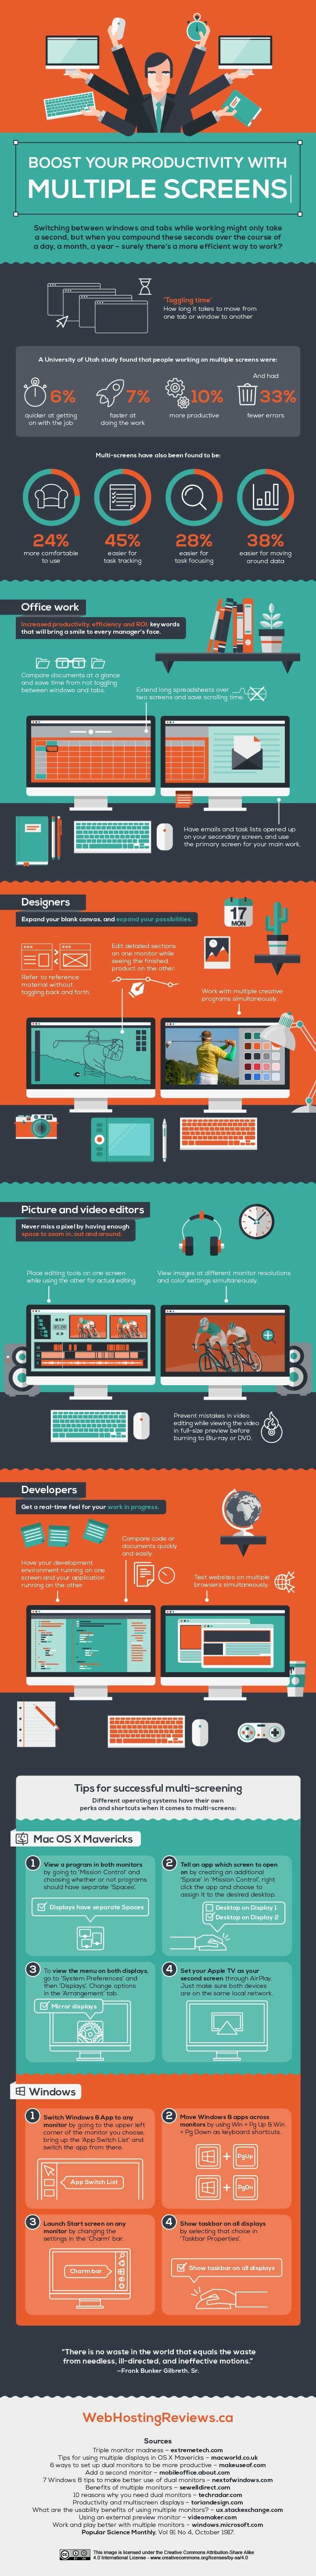 Boost your productivity using multiple screens #Infographic